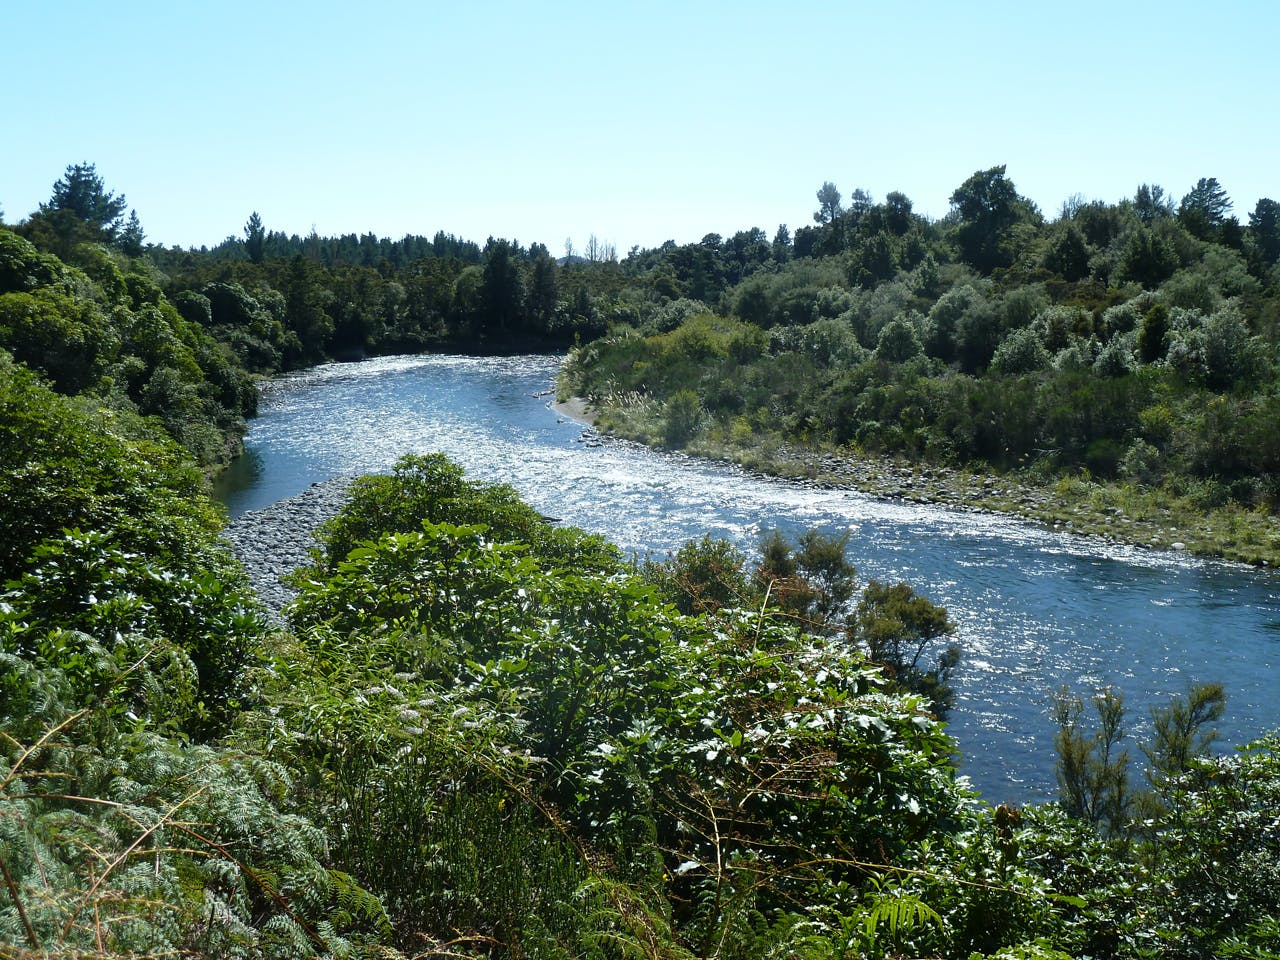 The three day walk along the Tongariro River is still years away